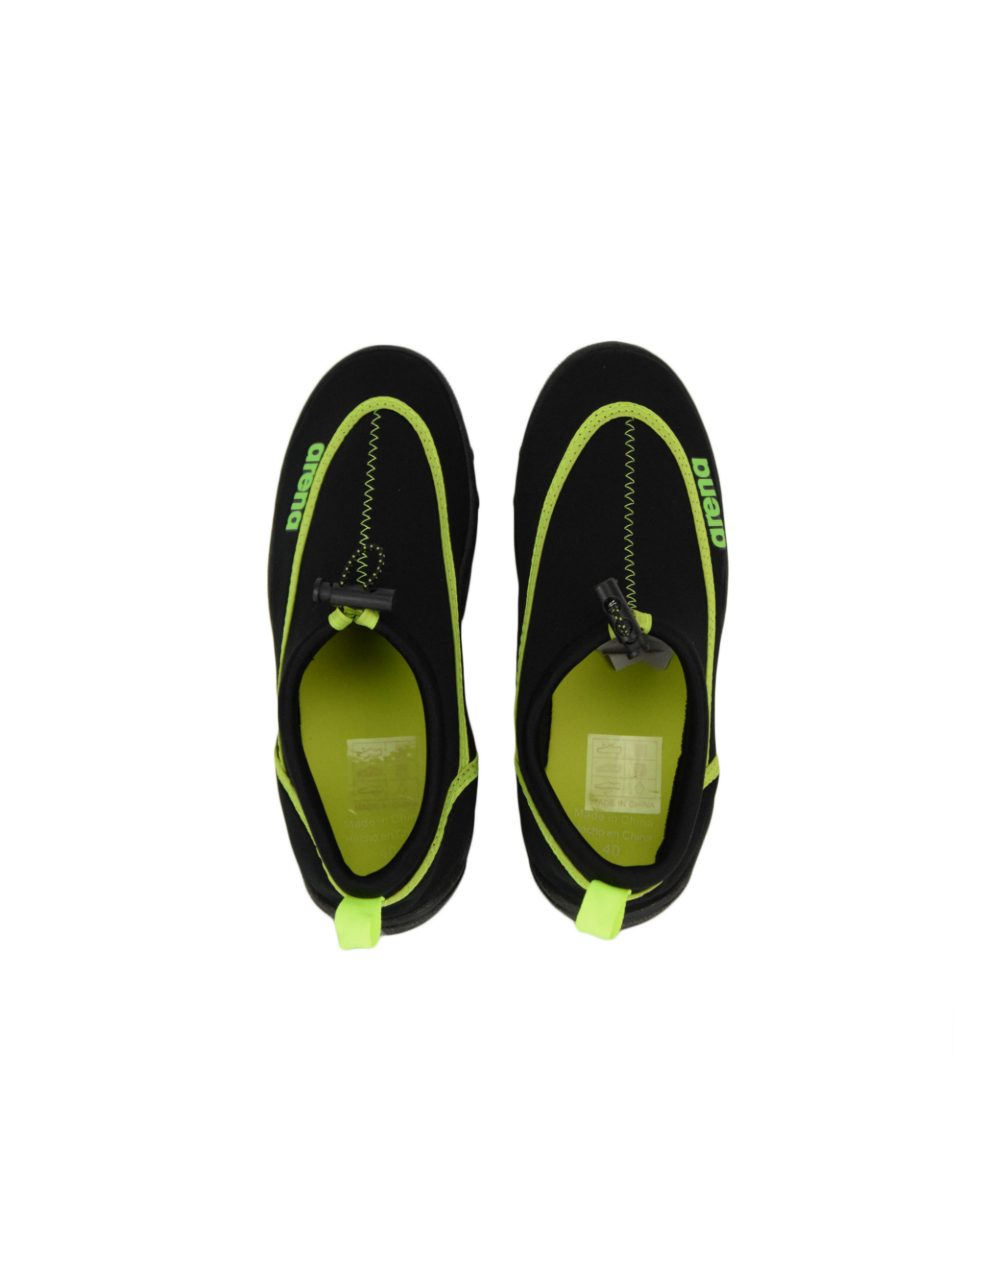 Arena Bow Polybag Shoes (1E030-50) Black/Neon Green